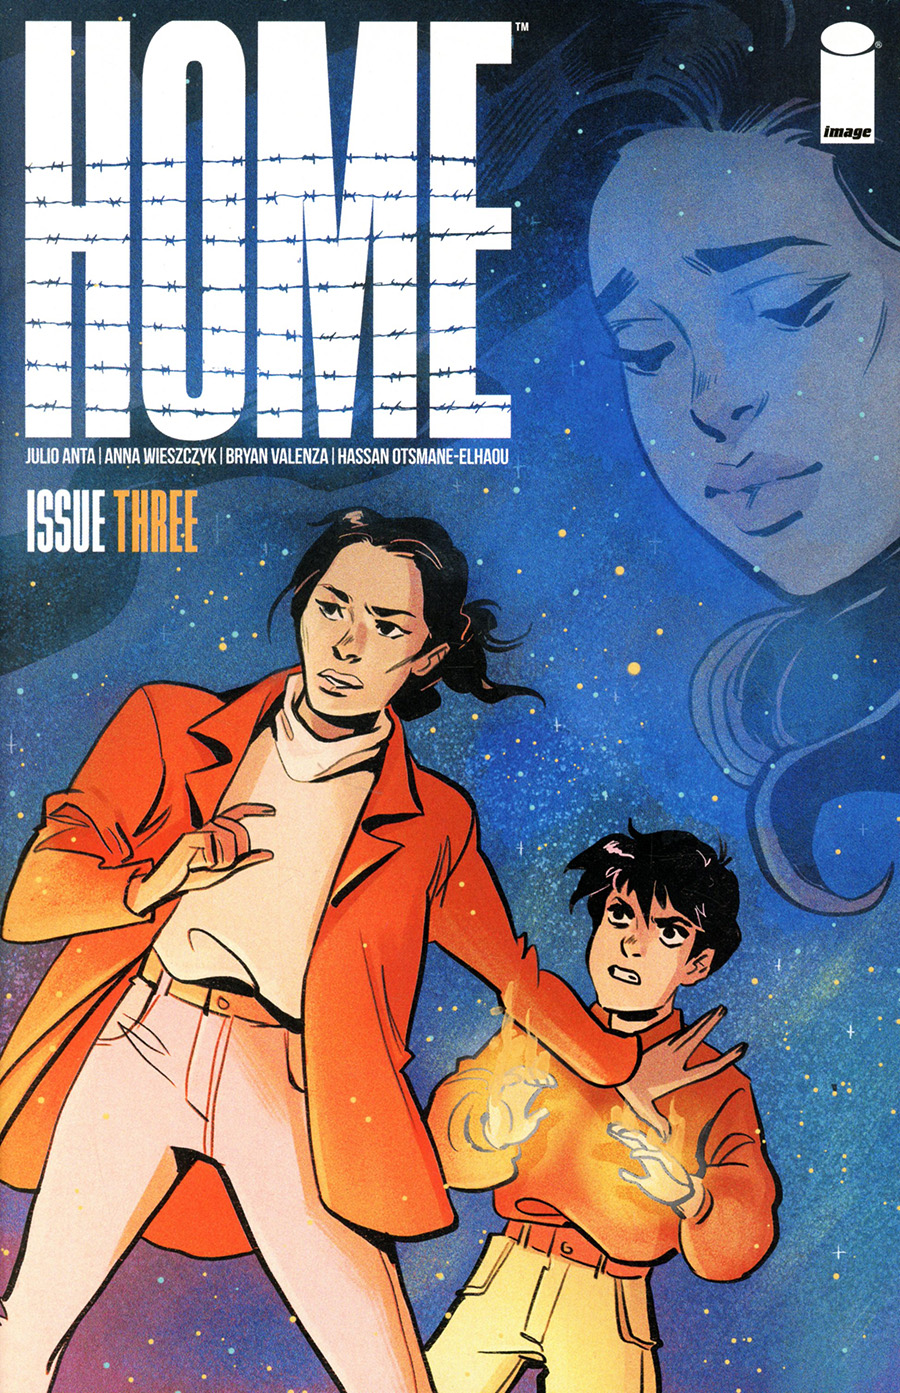 Home (Image Comics) #3 Cover A Regular Lisa Sterle Cover